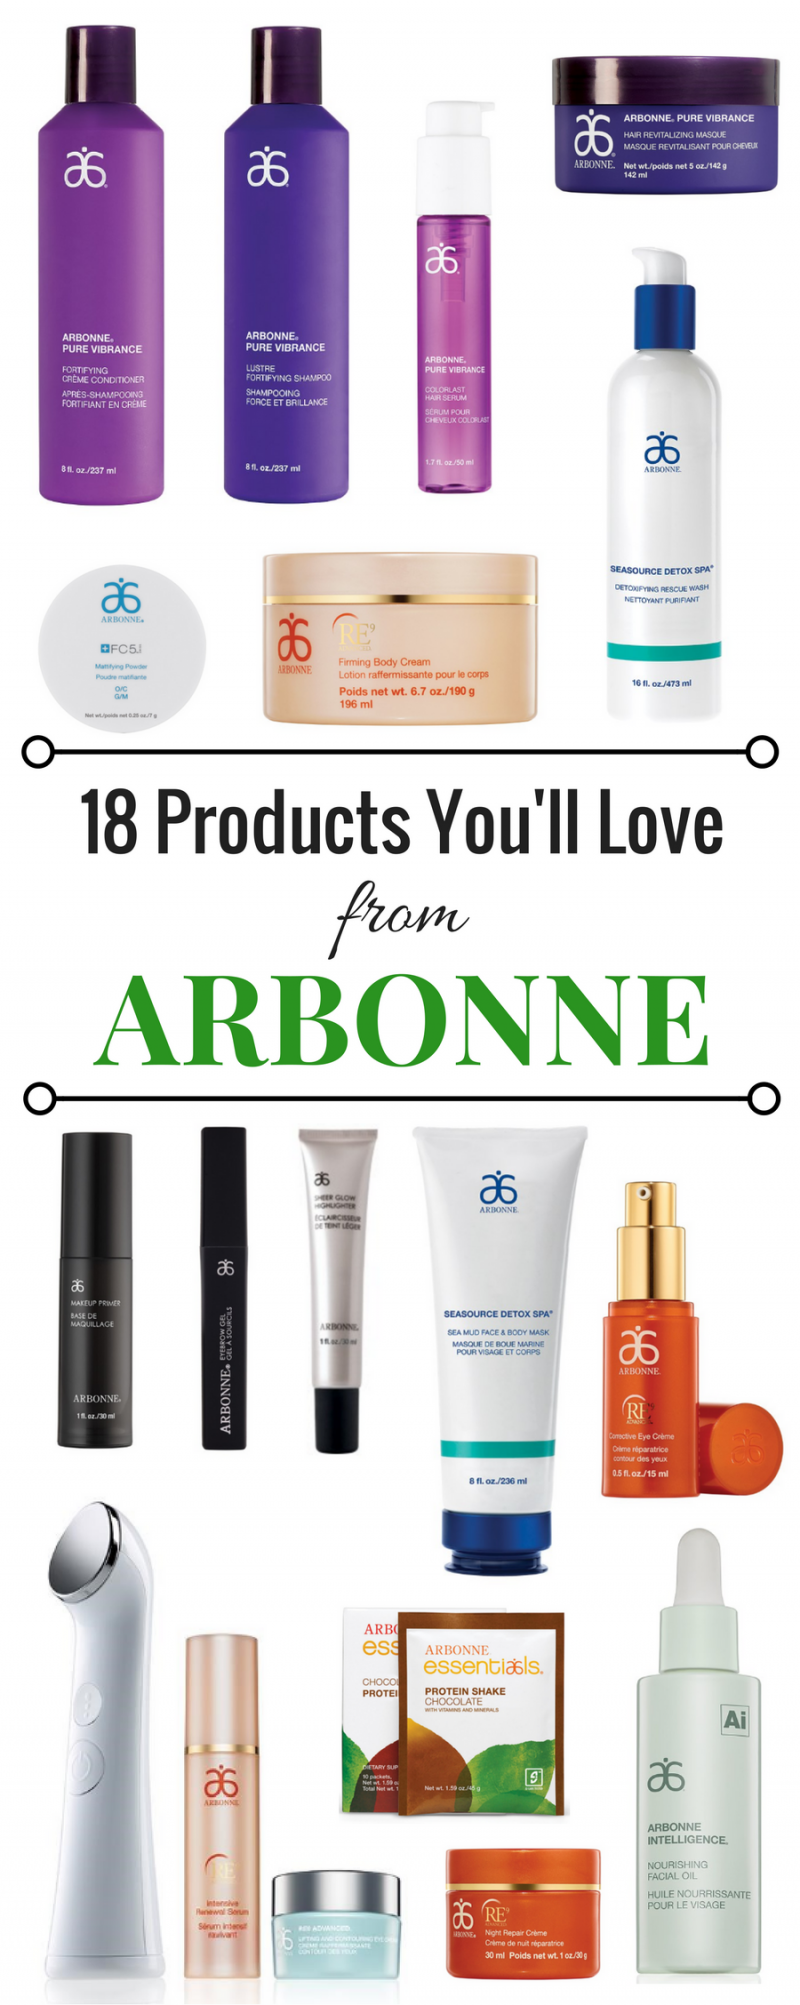 arbonne makeup consultant skincare beauty care hair independent before nutrition ll skin momwithoutlabels business favorite detox bag body gmo bath